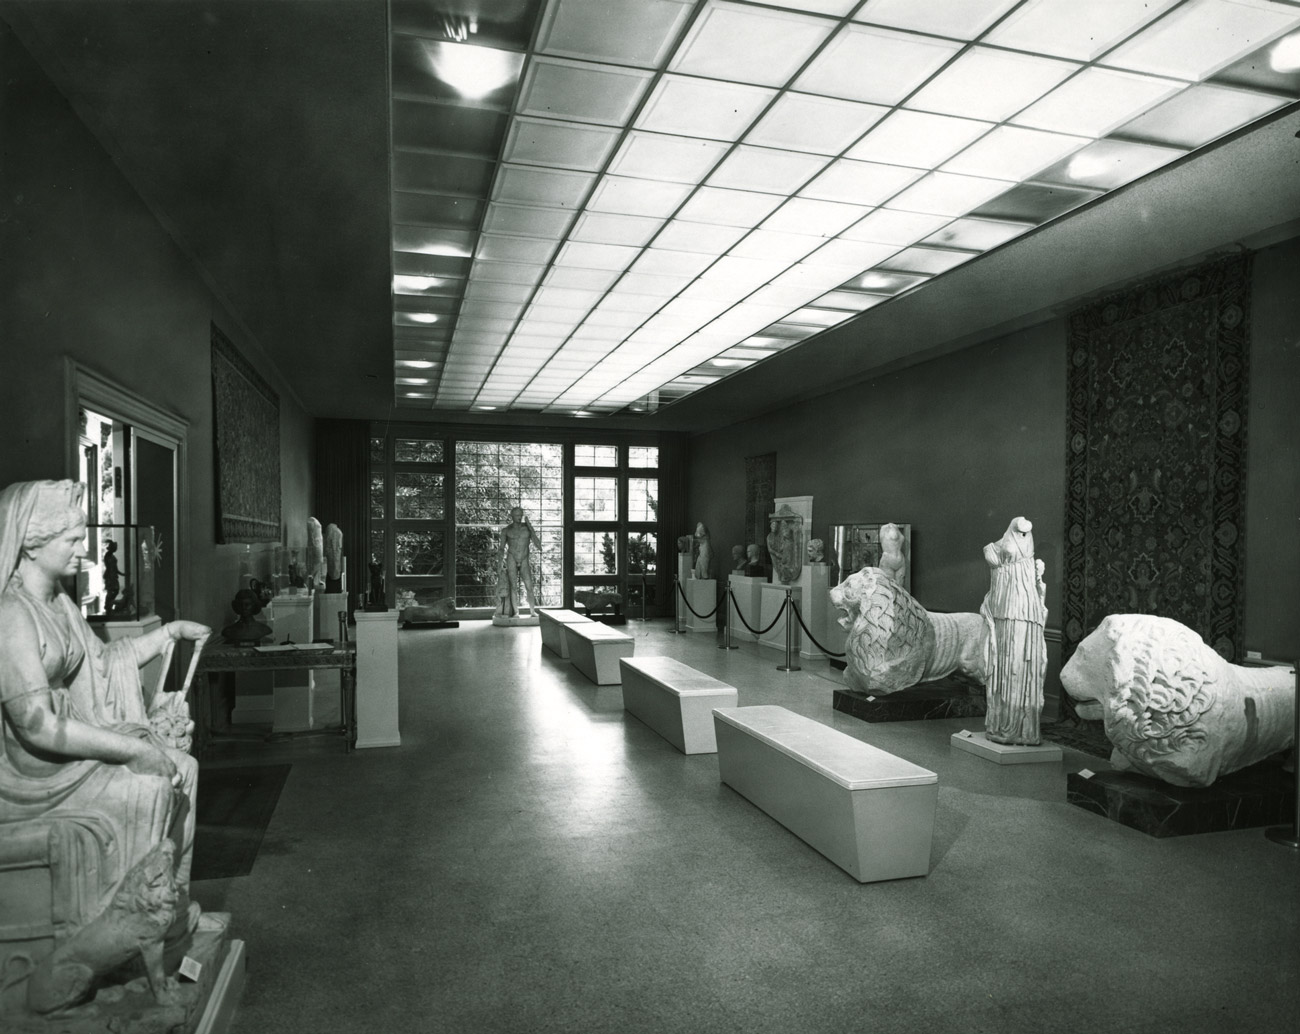 Black and white photo of a hall with Roman marble sculptures, tapestries on the walls and benches.